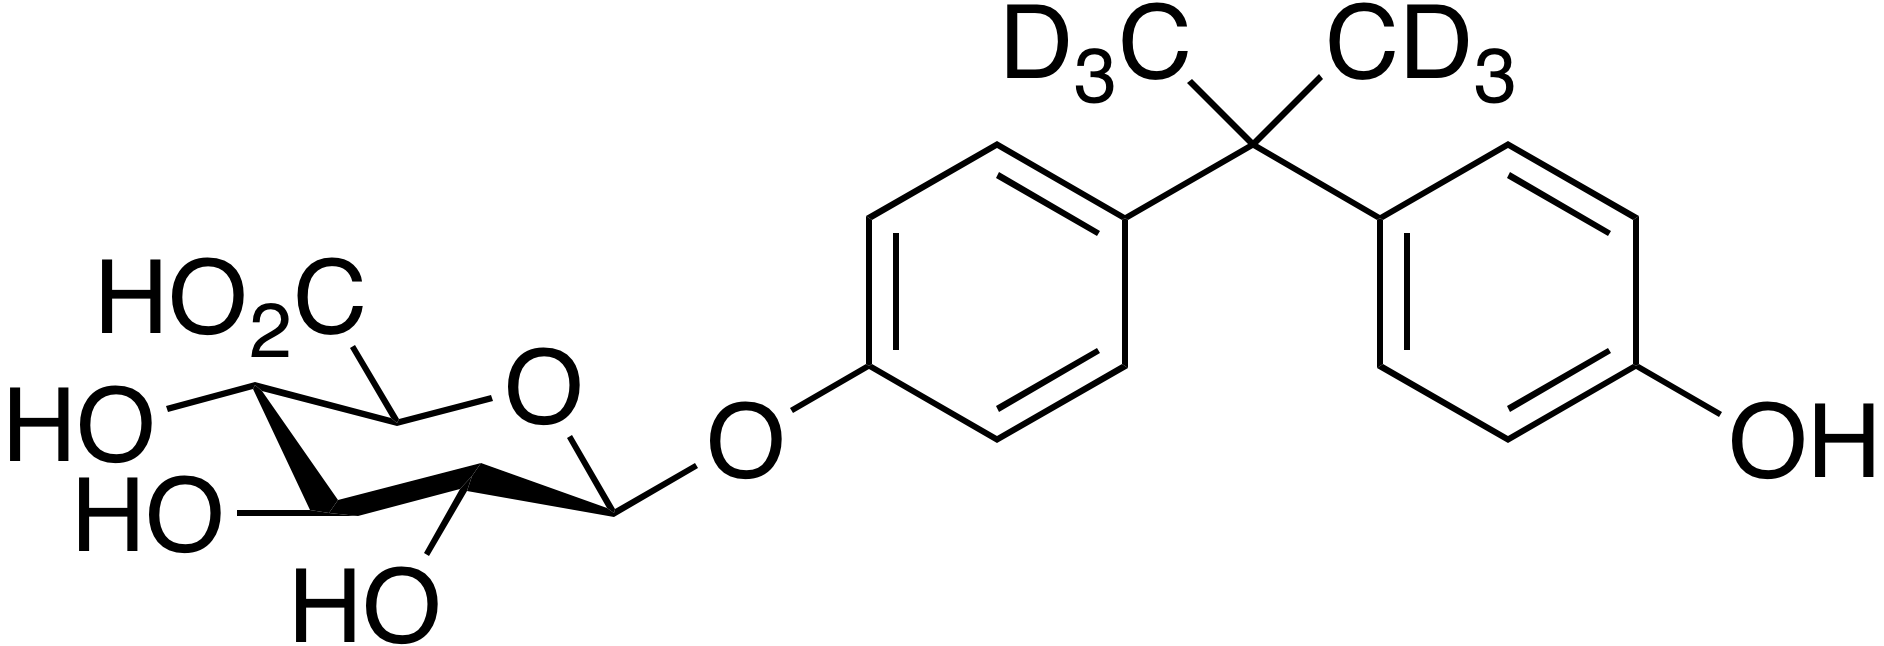 Bisphenol A (dimethyl-d<sub>6</sub>) β-D-glucuronide